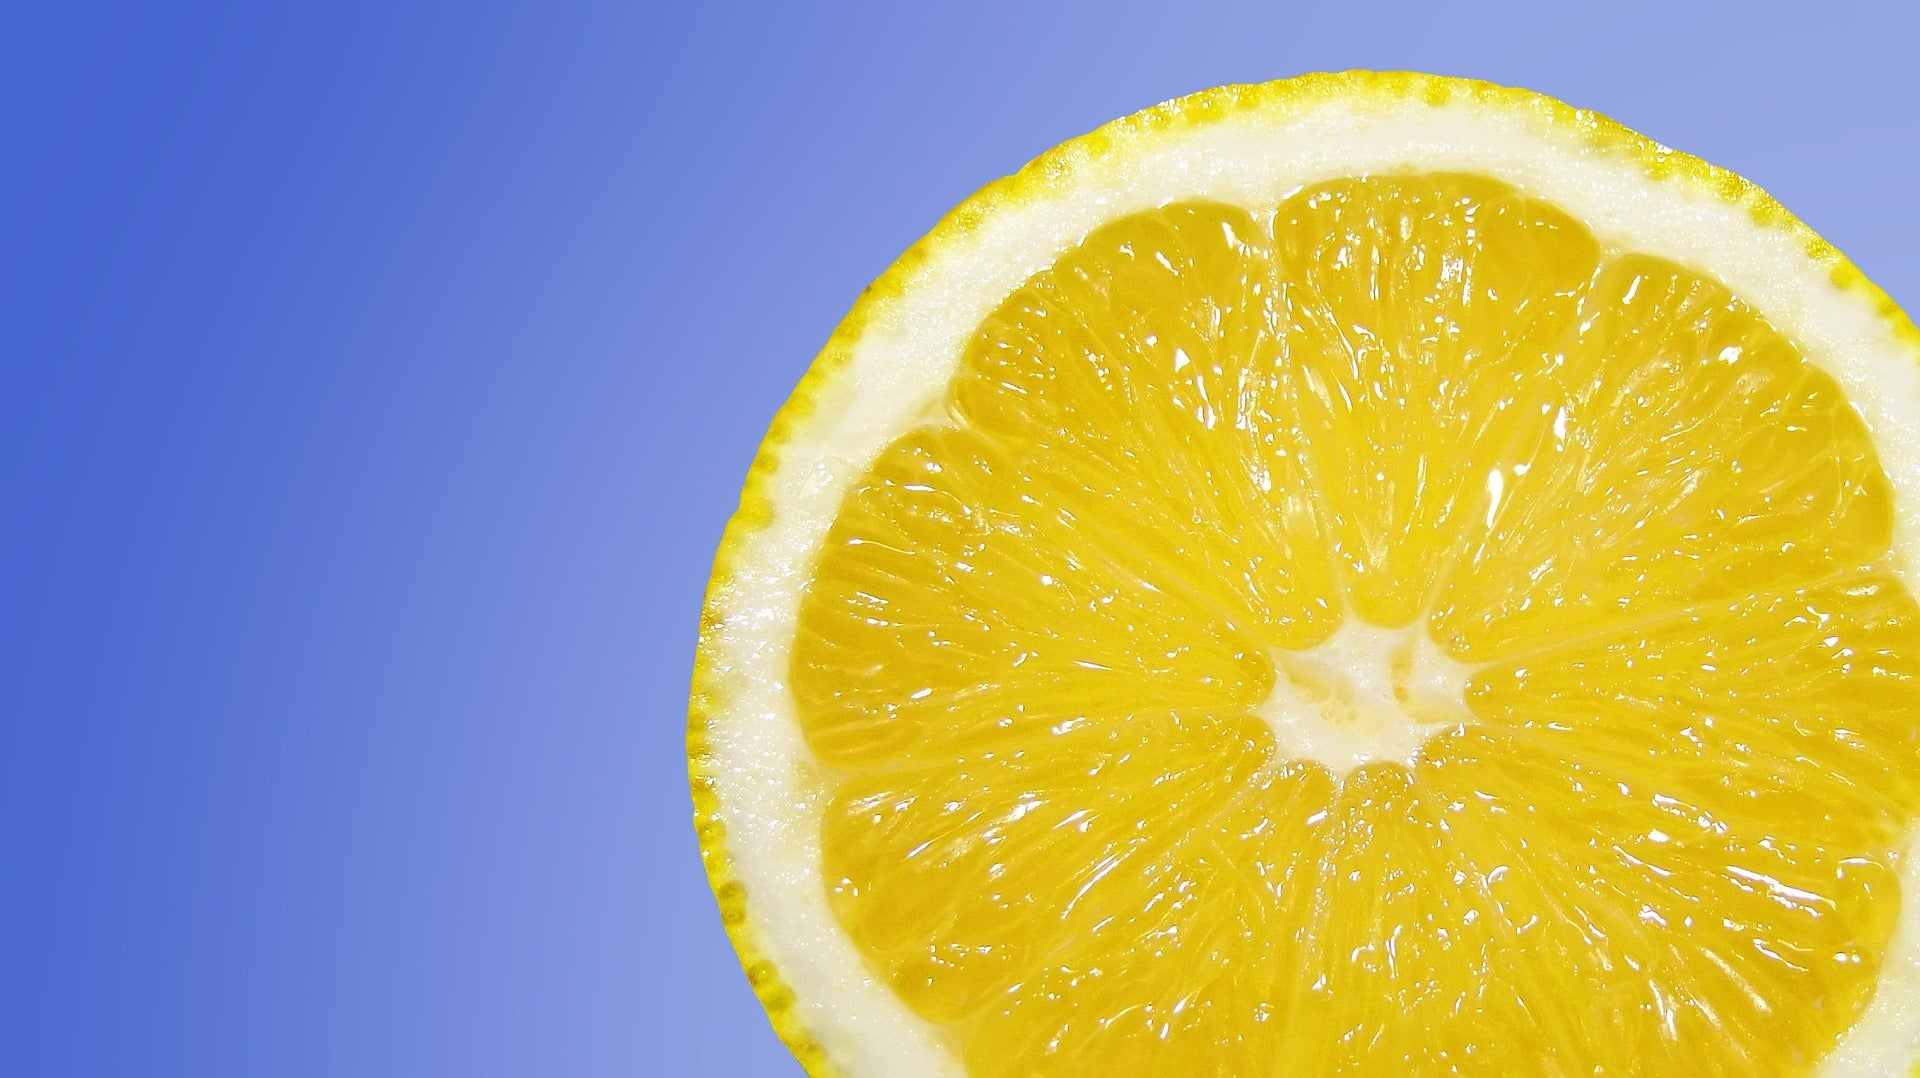 lemon essential oil promotes clarity of mind